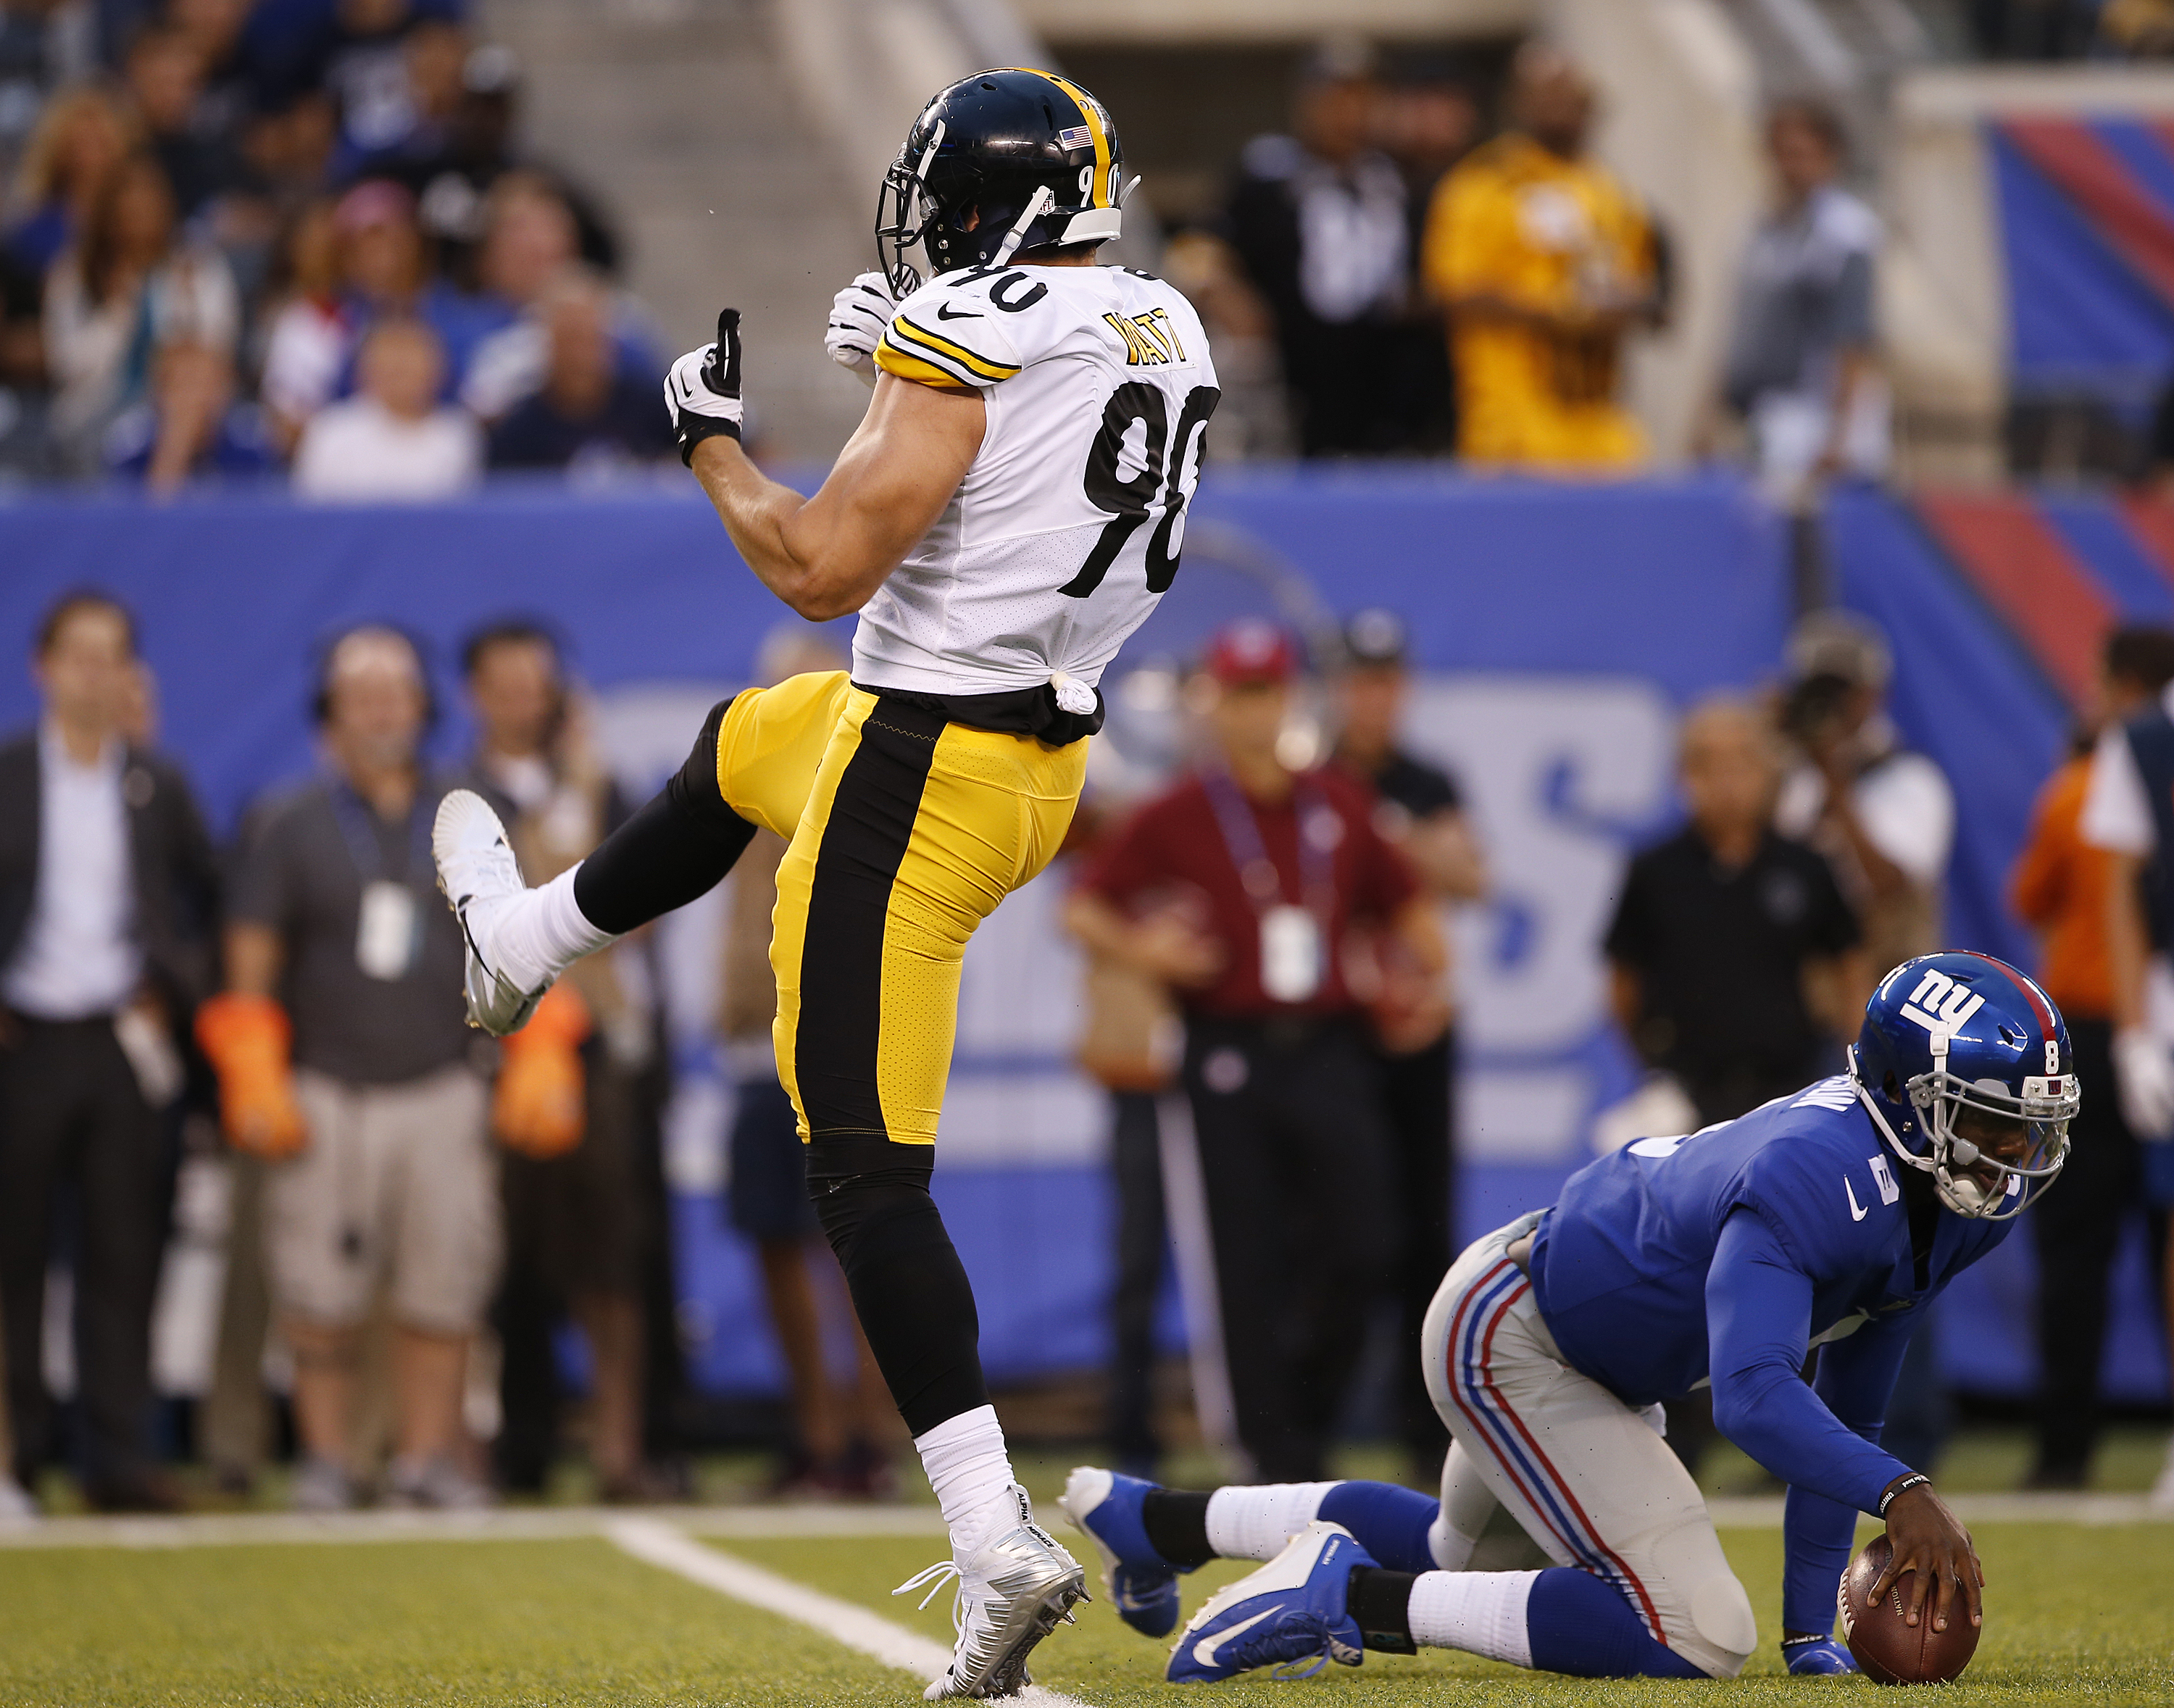 d99e8e8c9 ... NJ – AUGUST 11 T.J. Watt 90 of the Pittsburgh Steelers reacts after